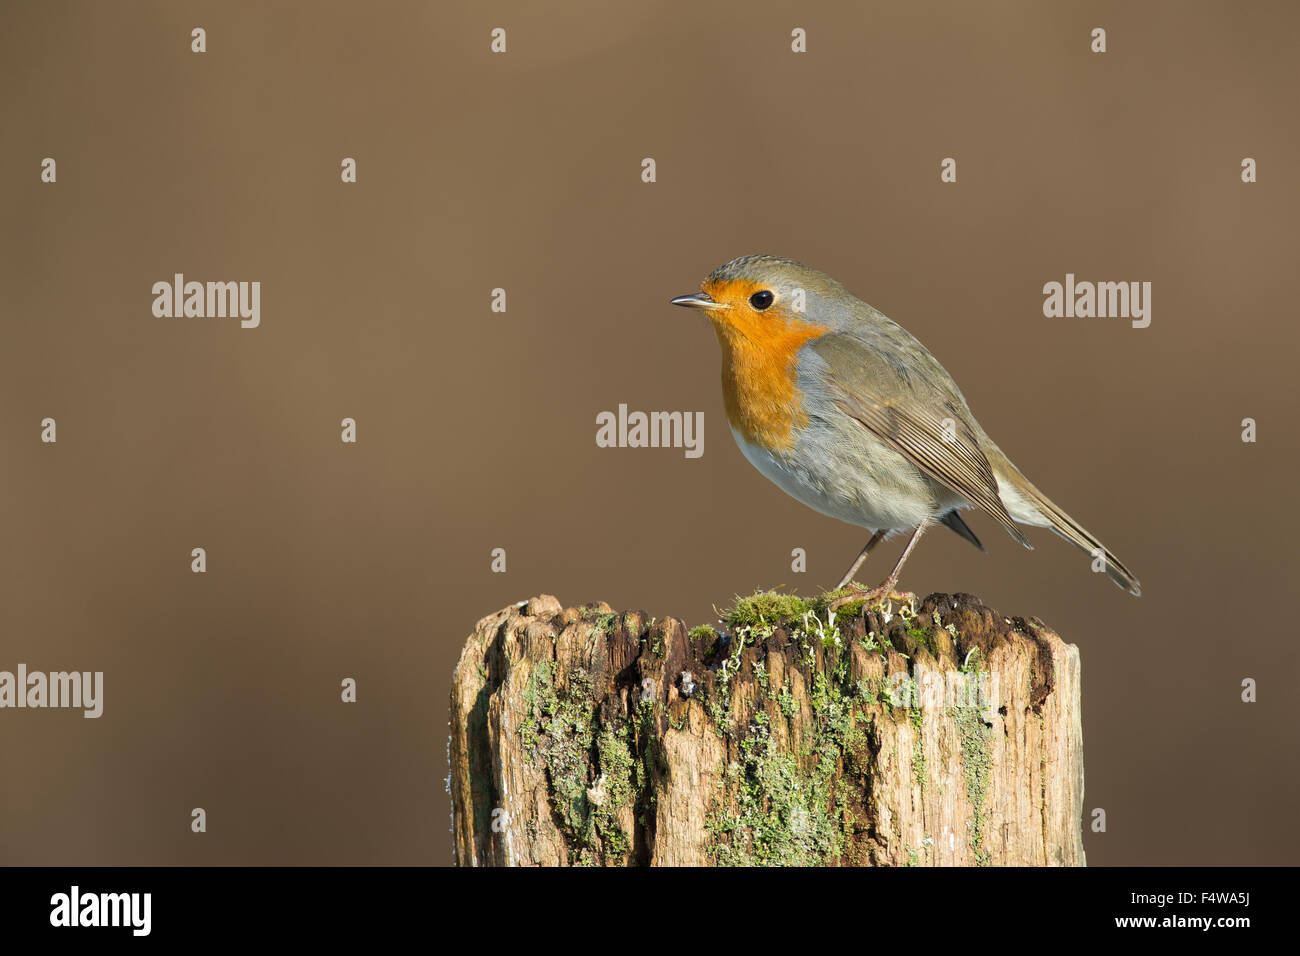 Robin, European robin, Rotkehlchen, Erithacus rubecula, Le Rouge-gorge familier - Stock Image